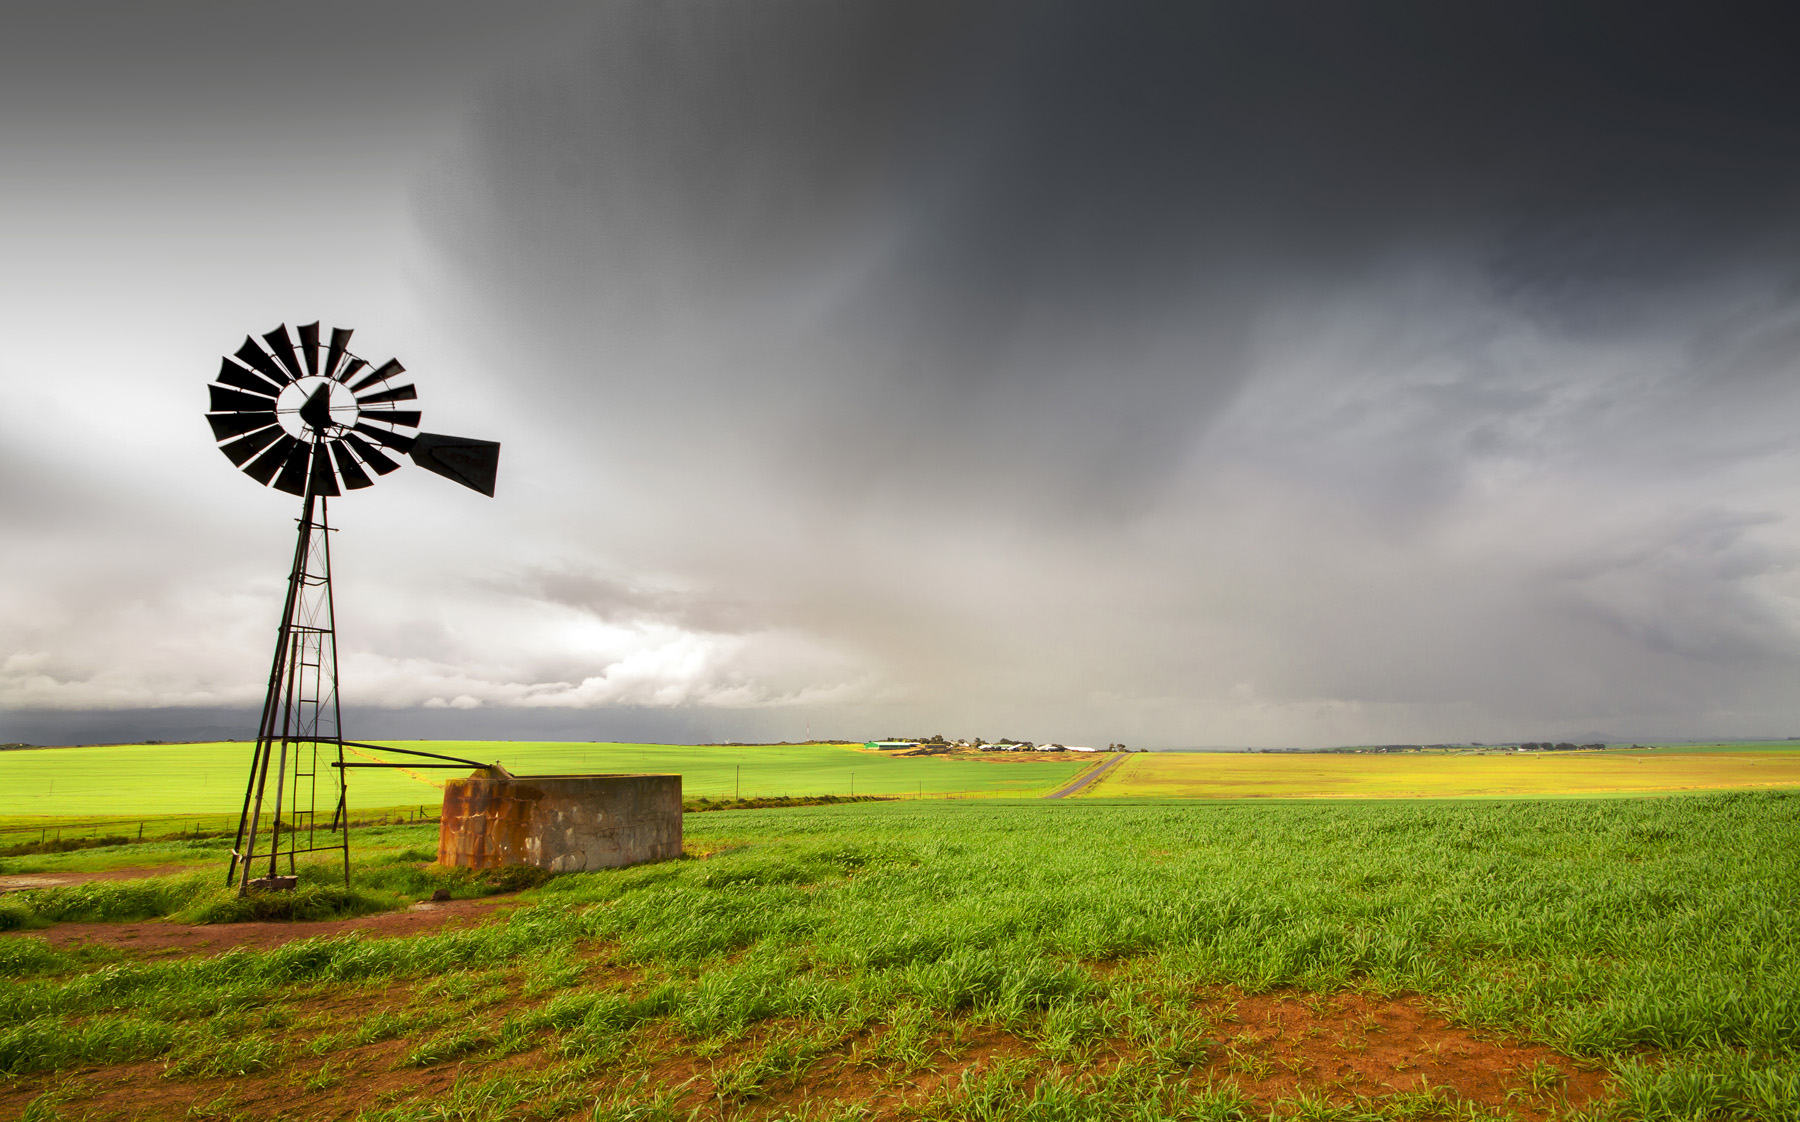 Windmill with storm in the background